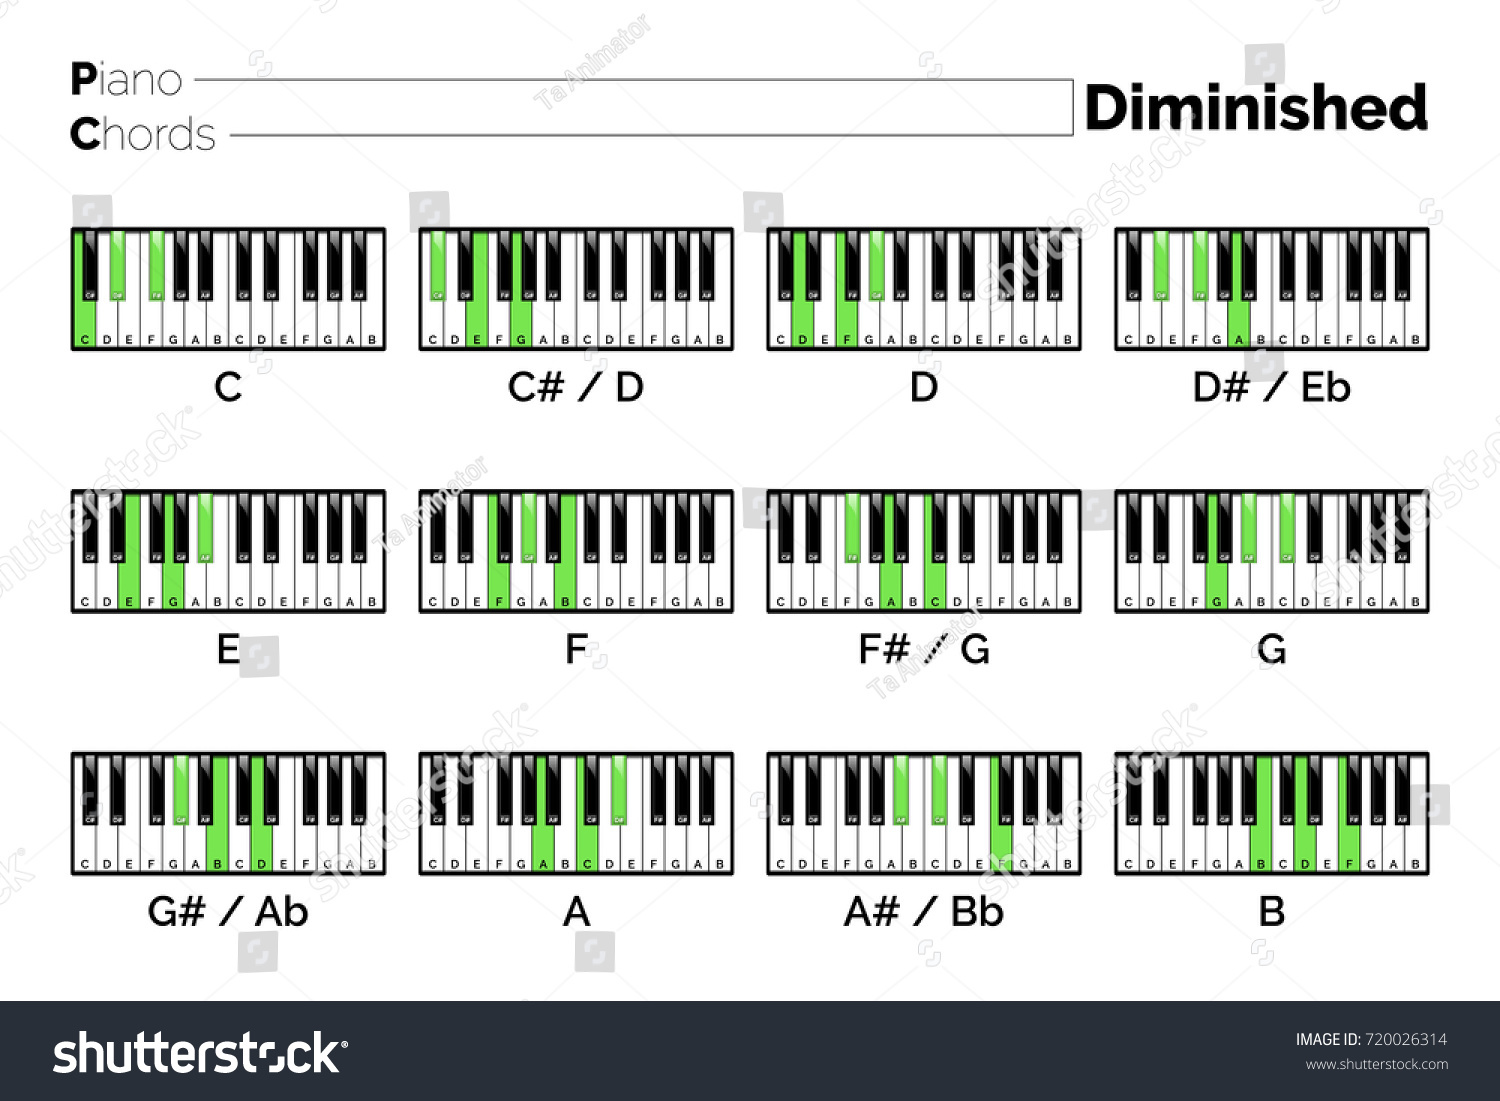 Piano chord diminished stock vector 720026314 shutterstock piano chord diminished hexwebz Image collections